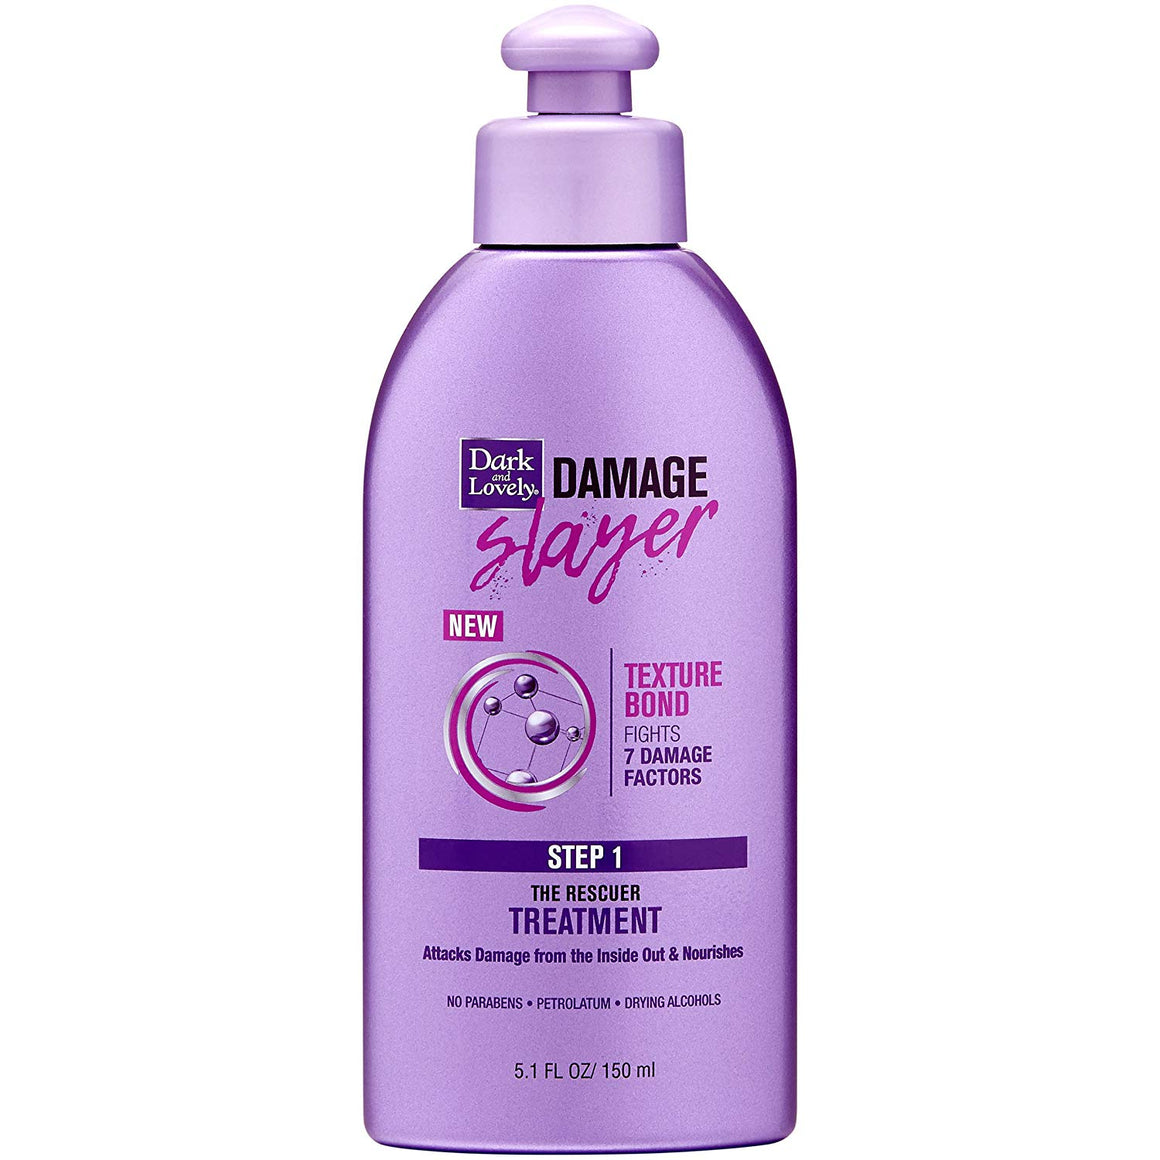 Dark and Lovely Damage Slayer The Rescuer Treatment, 5 Fluid Ounce